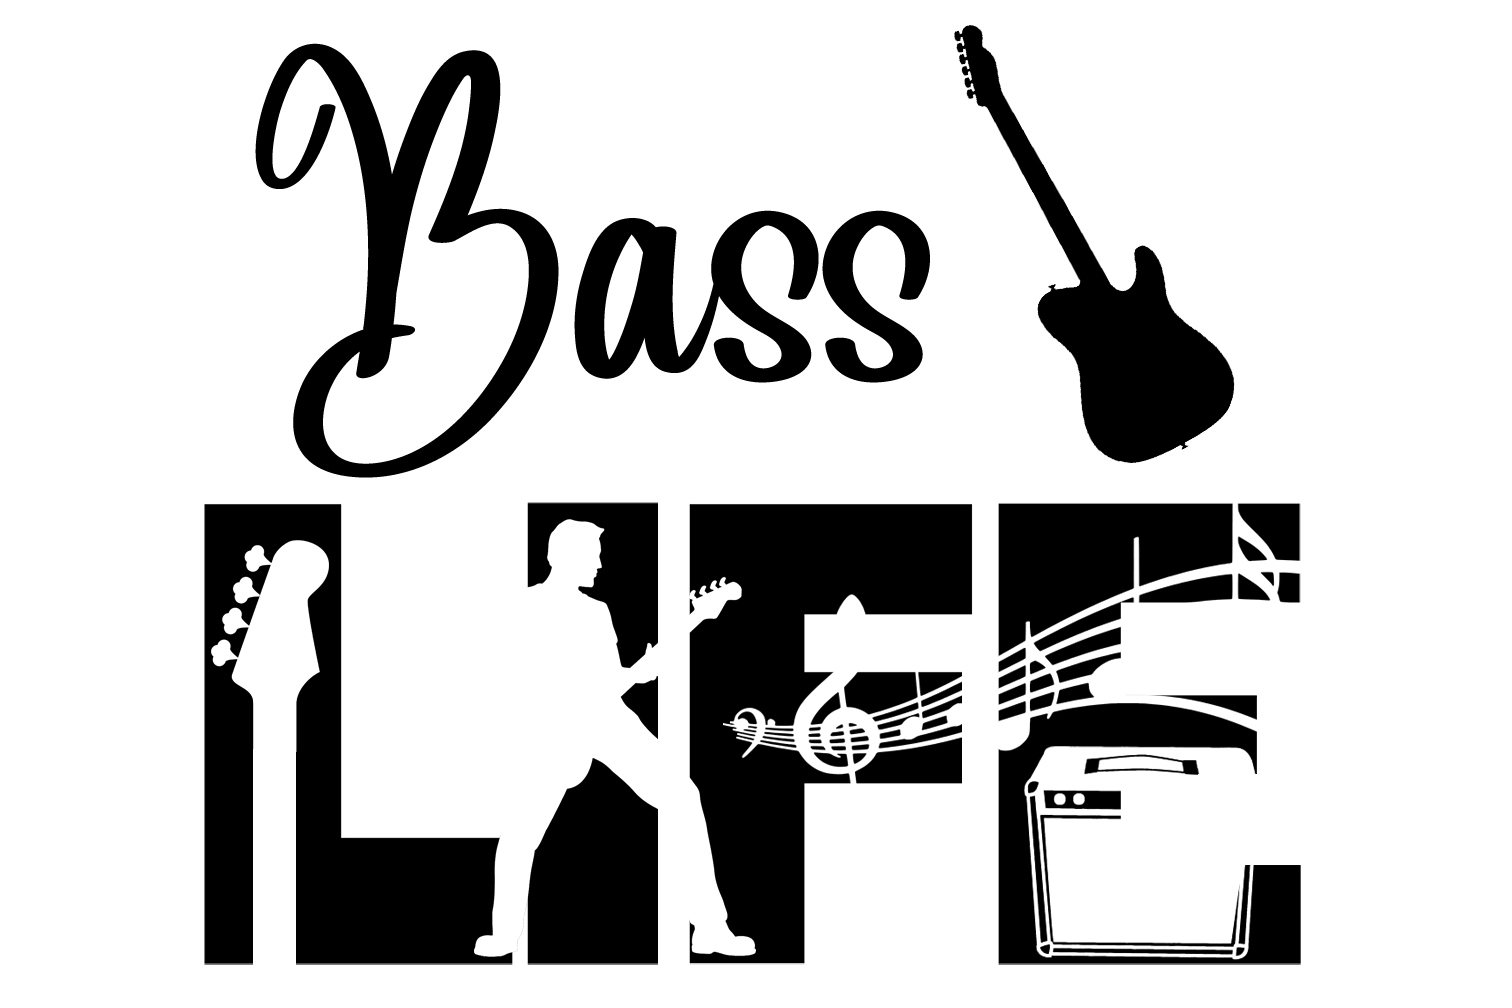 Free Bass Life SVG File